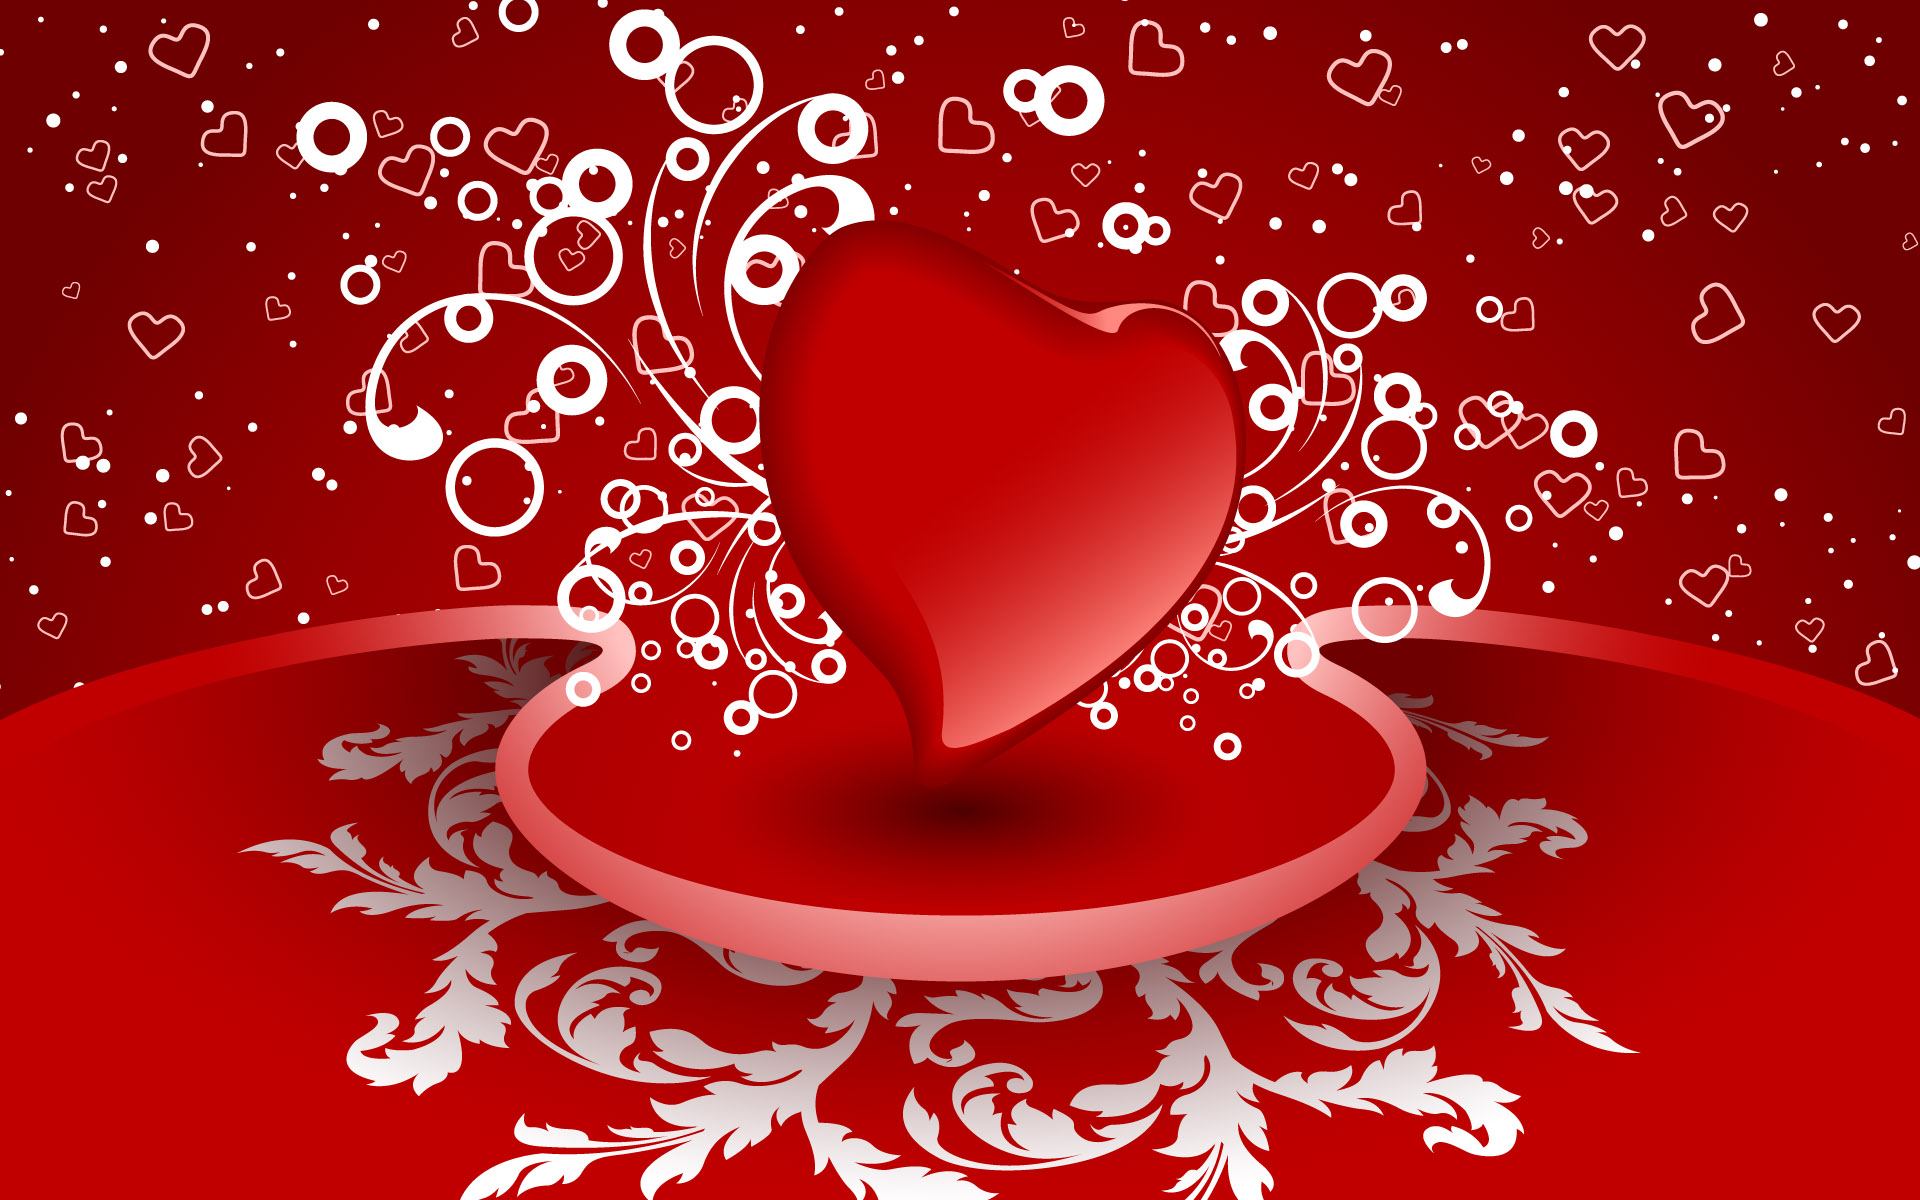 new valentines day wallpaper collection free hd